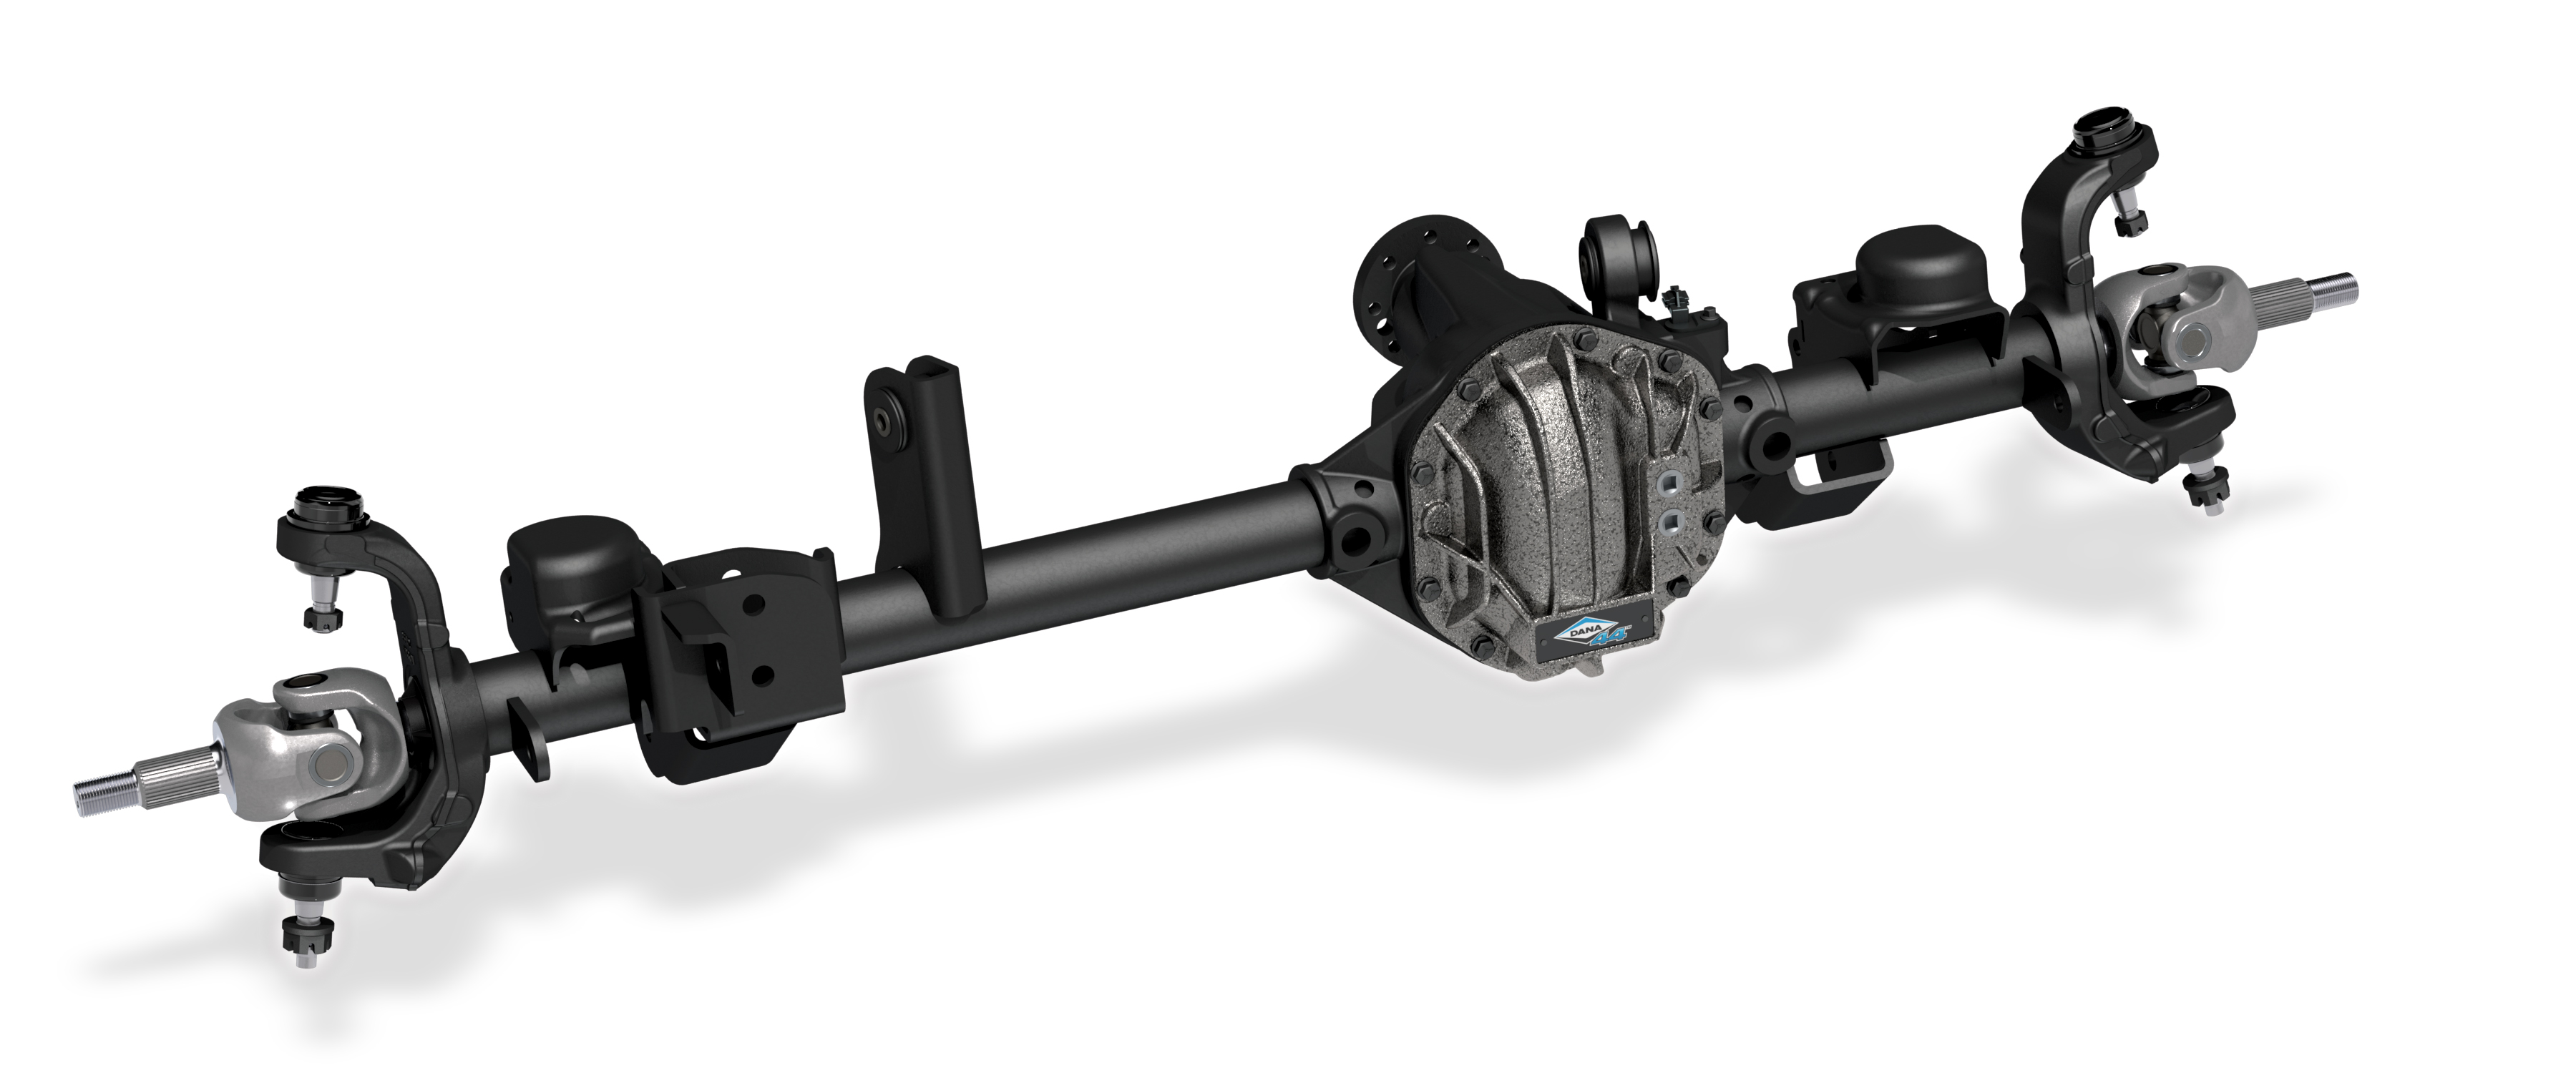 New Jeep Wrangler Axles From Dana